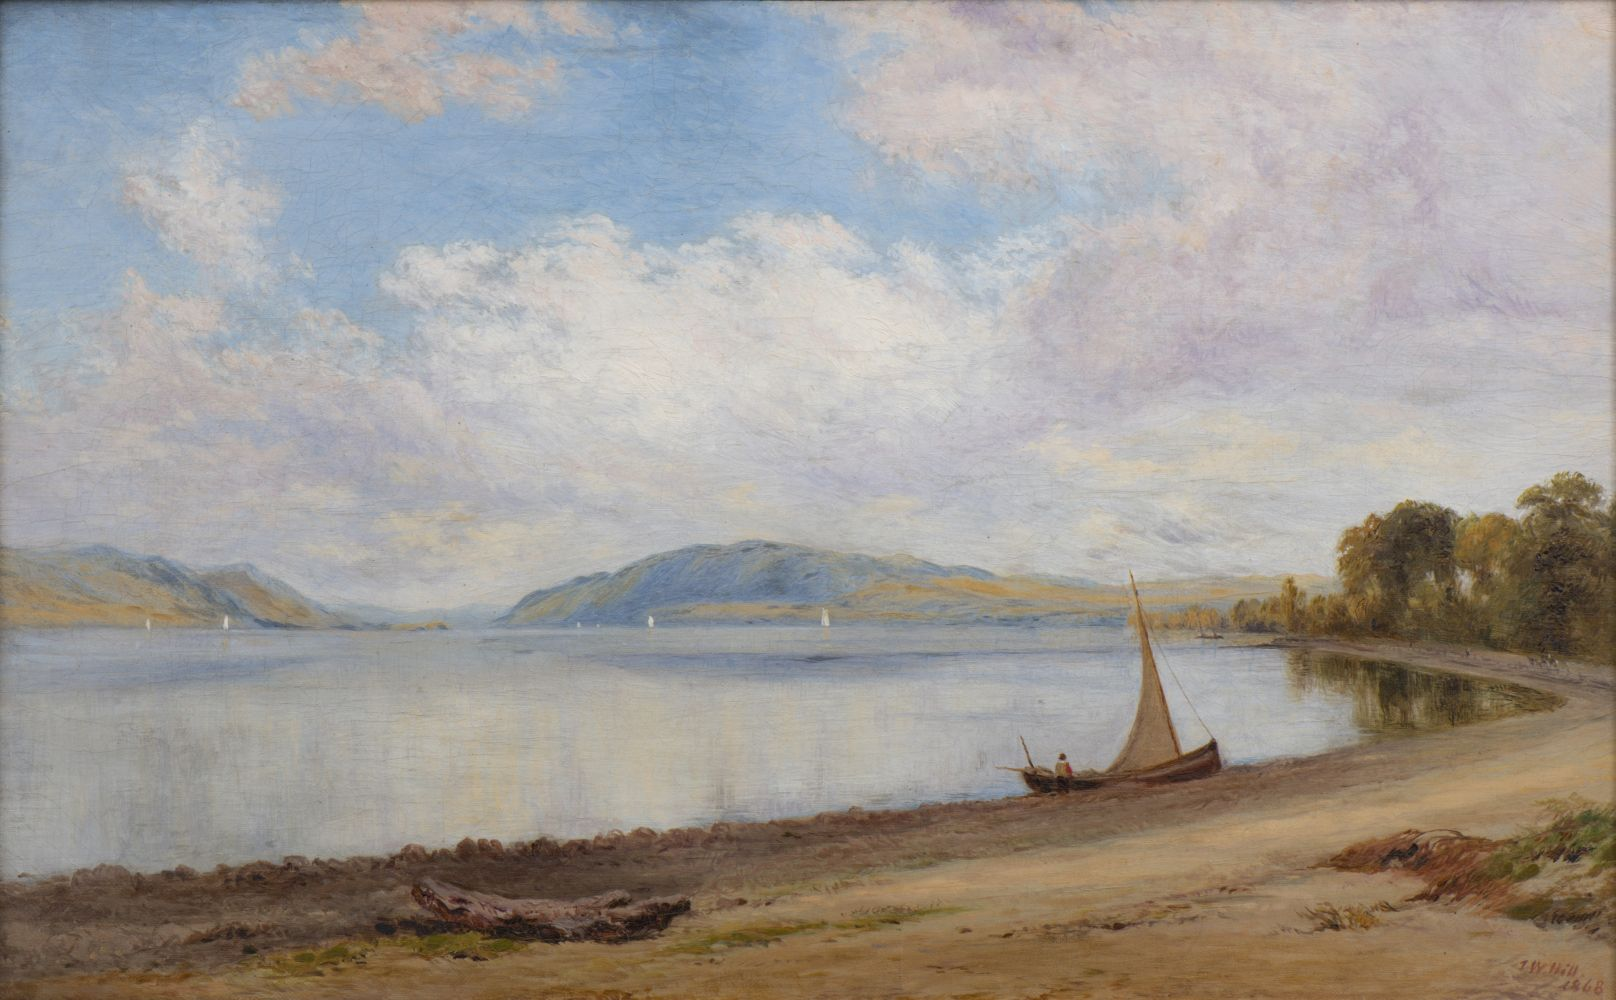 John William Hill (1812–1879) Afternoon, Newburgh-on-Hudson, 1868. Oil on canvas, 15 x 24 in. Signed and dated lower right: J. W. Hill / 1868